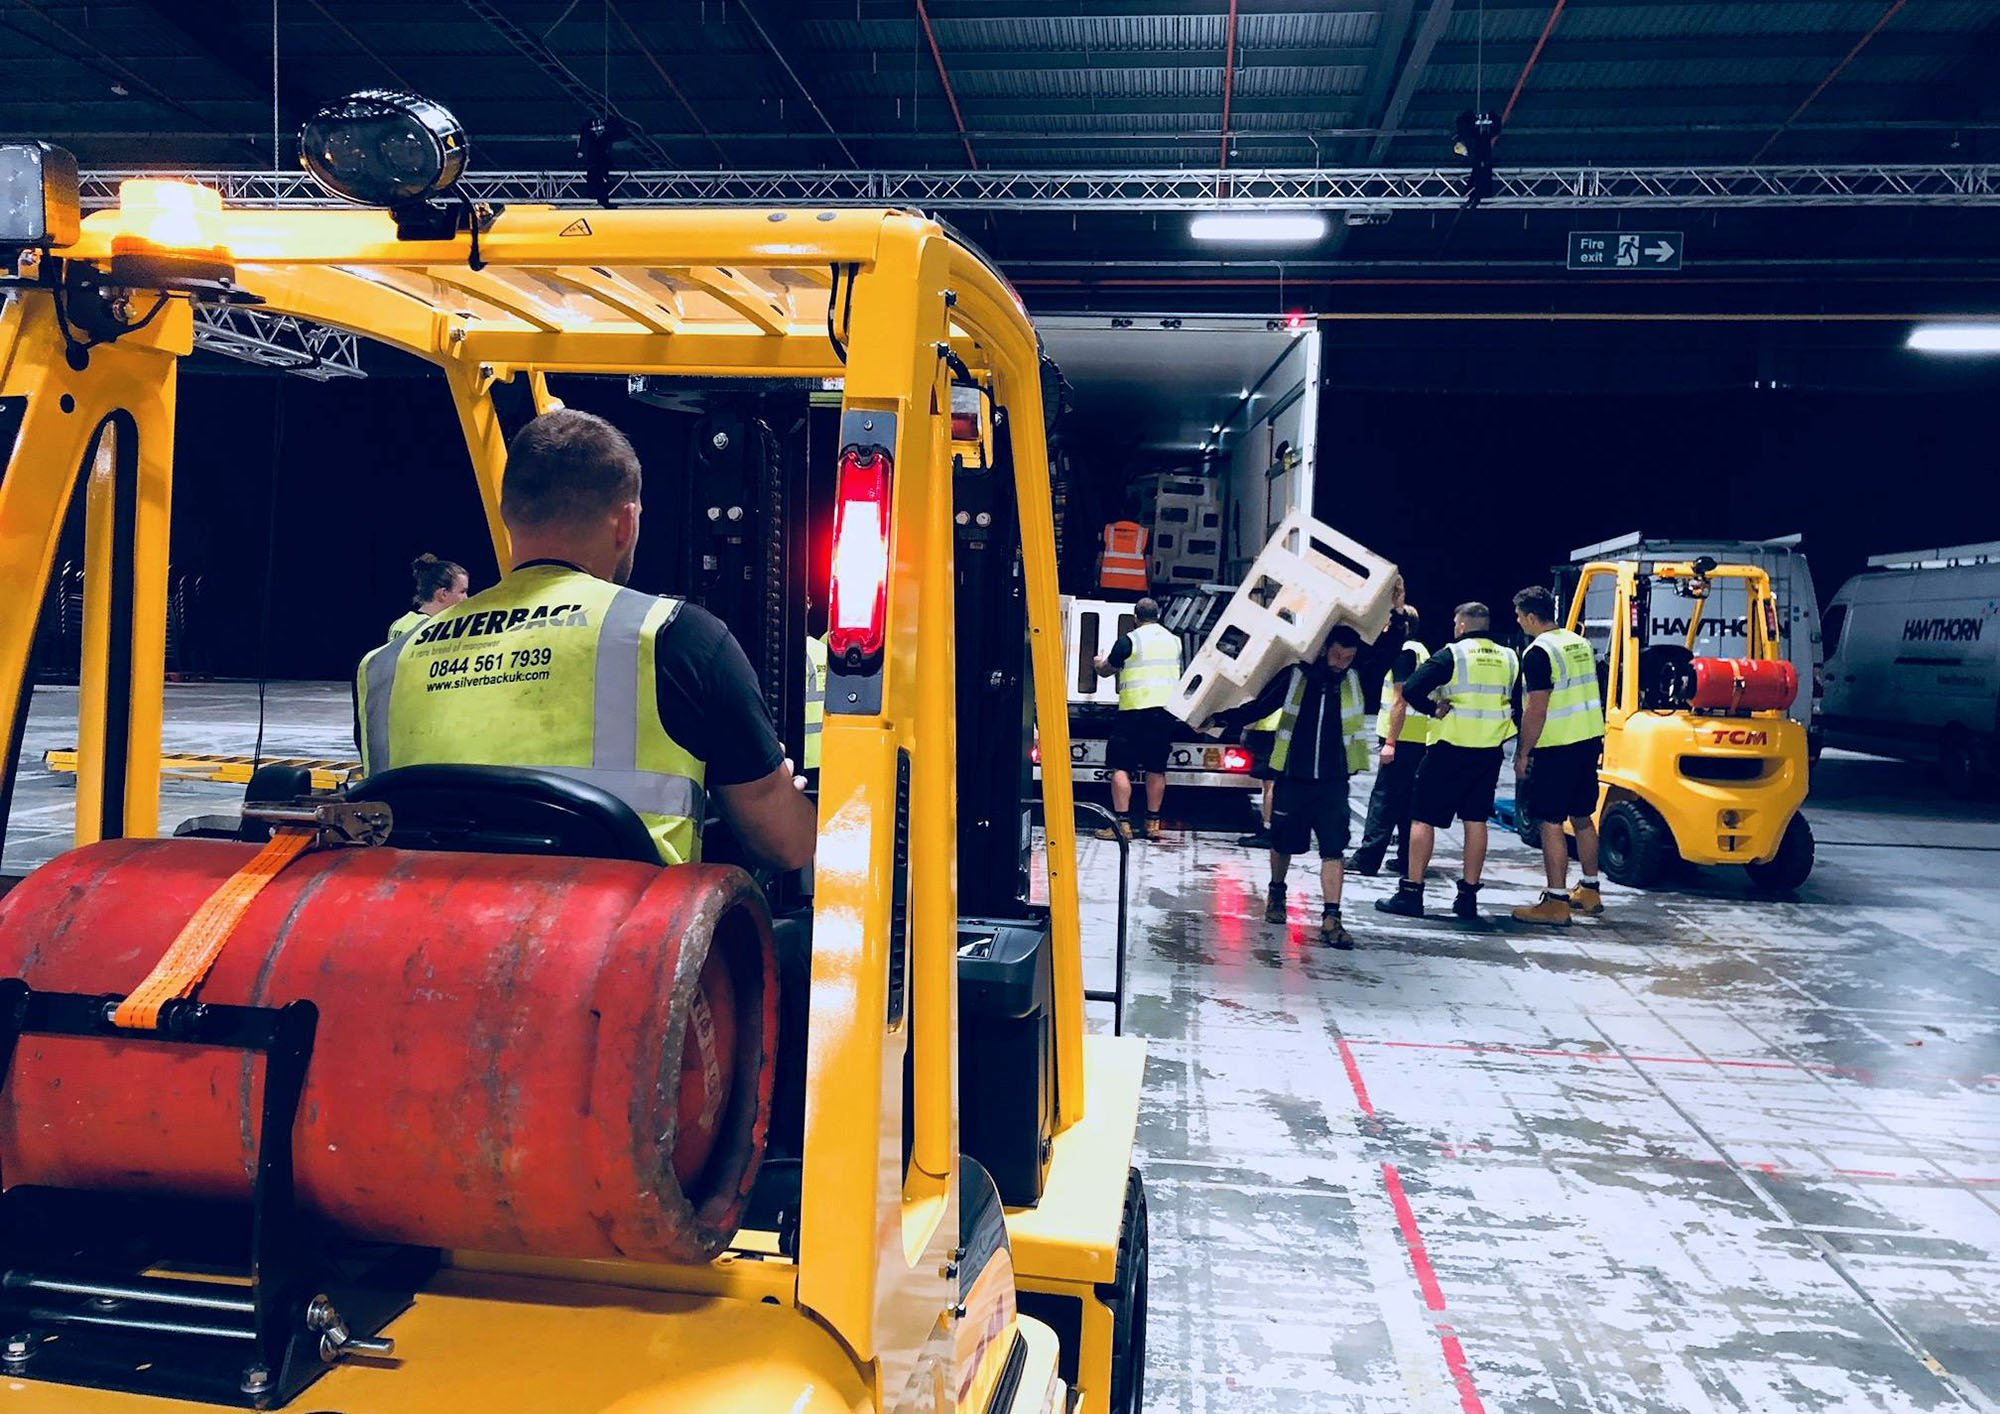 Silverback team unloading truck with forklift